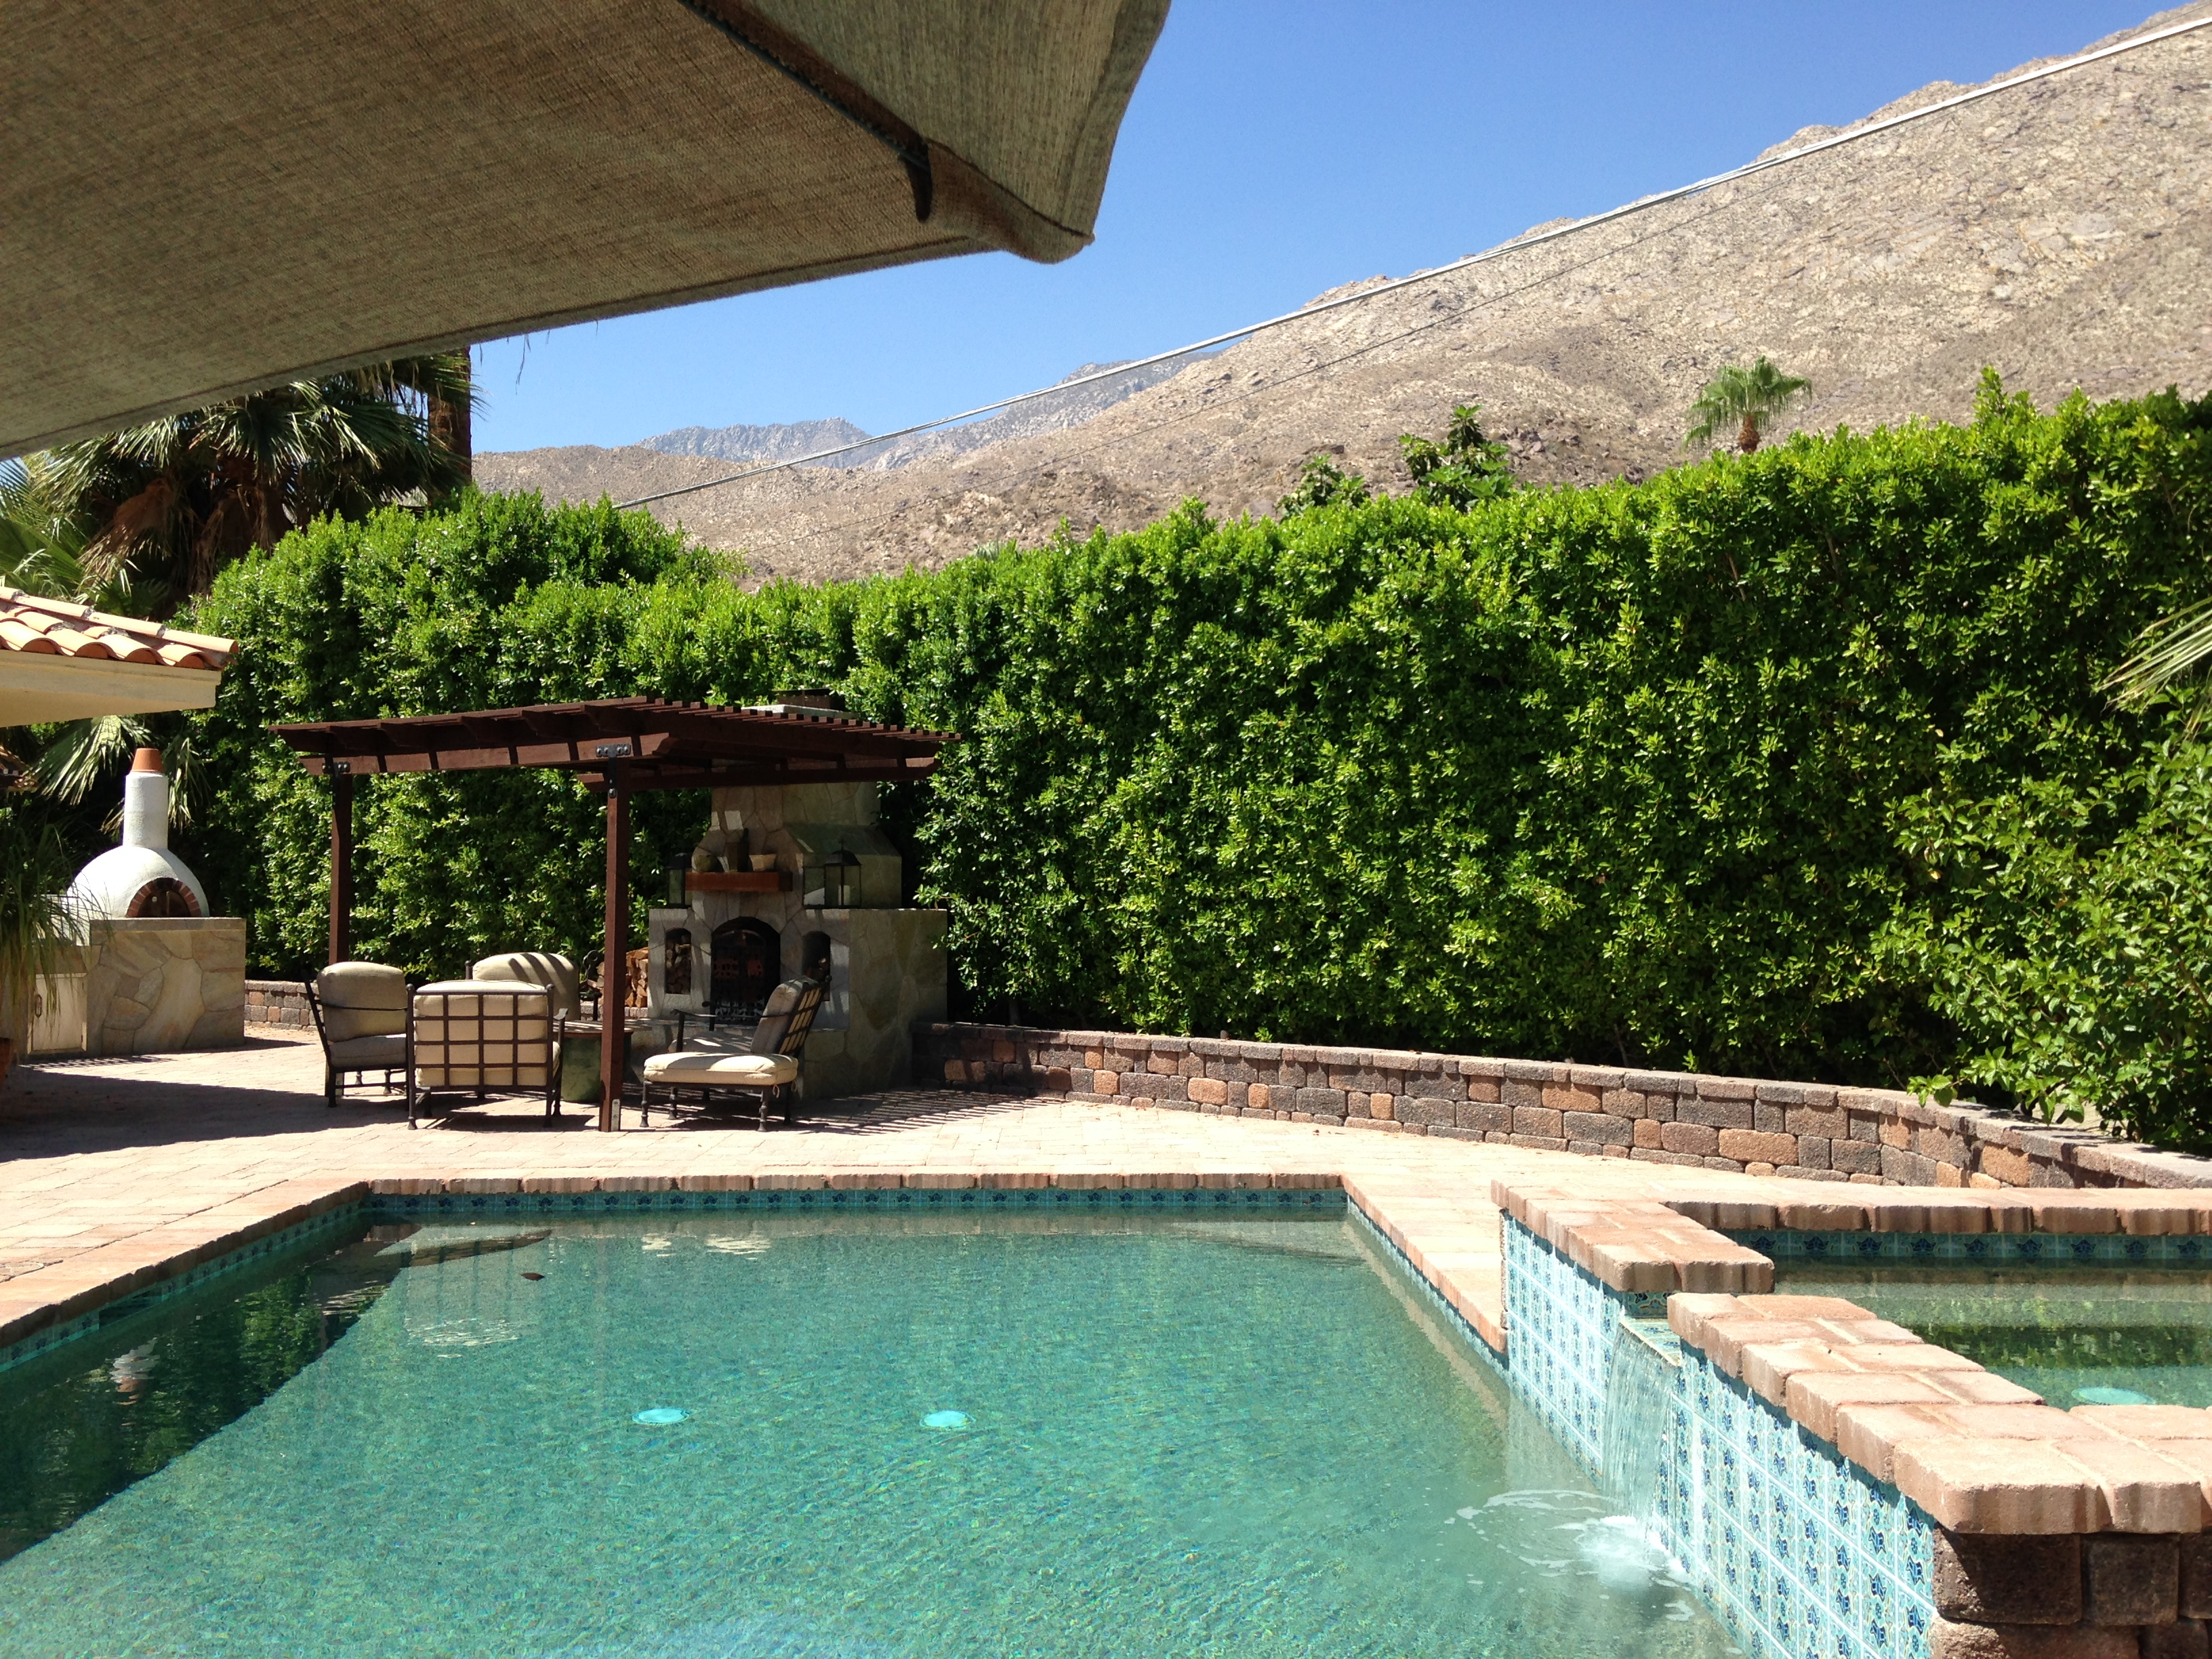 tracy merrigan, palm springs, real estate, open houses palm springs, palm springs real estate, mid-century, mid century modern real estate, harcourts desert homes, The Mesa, Pool, View, Spanish Style